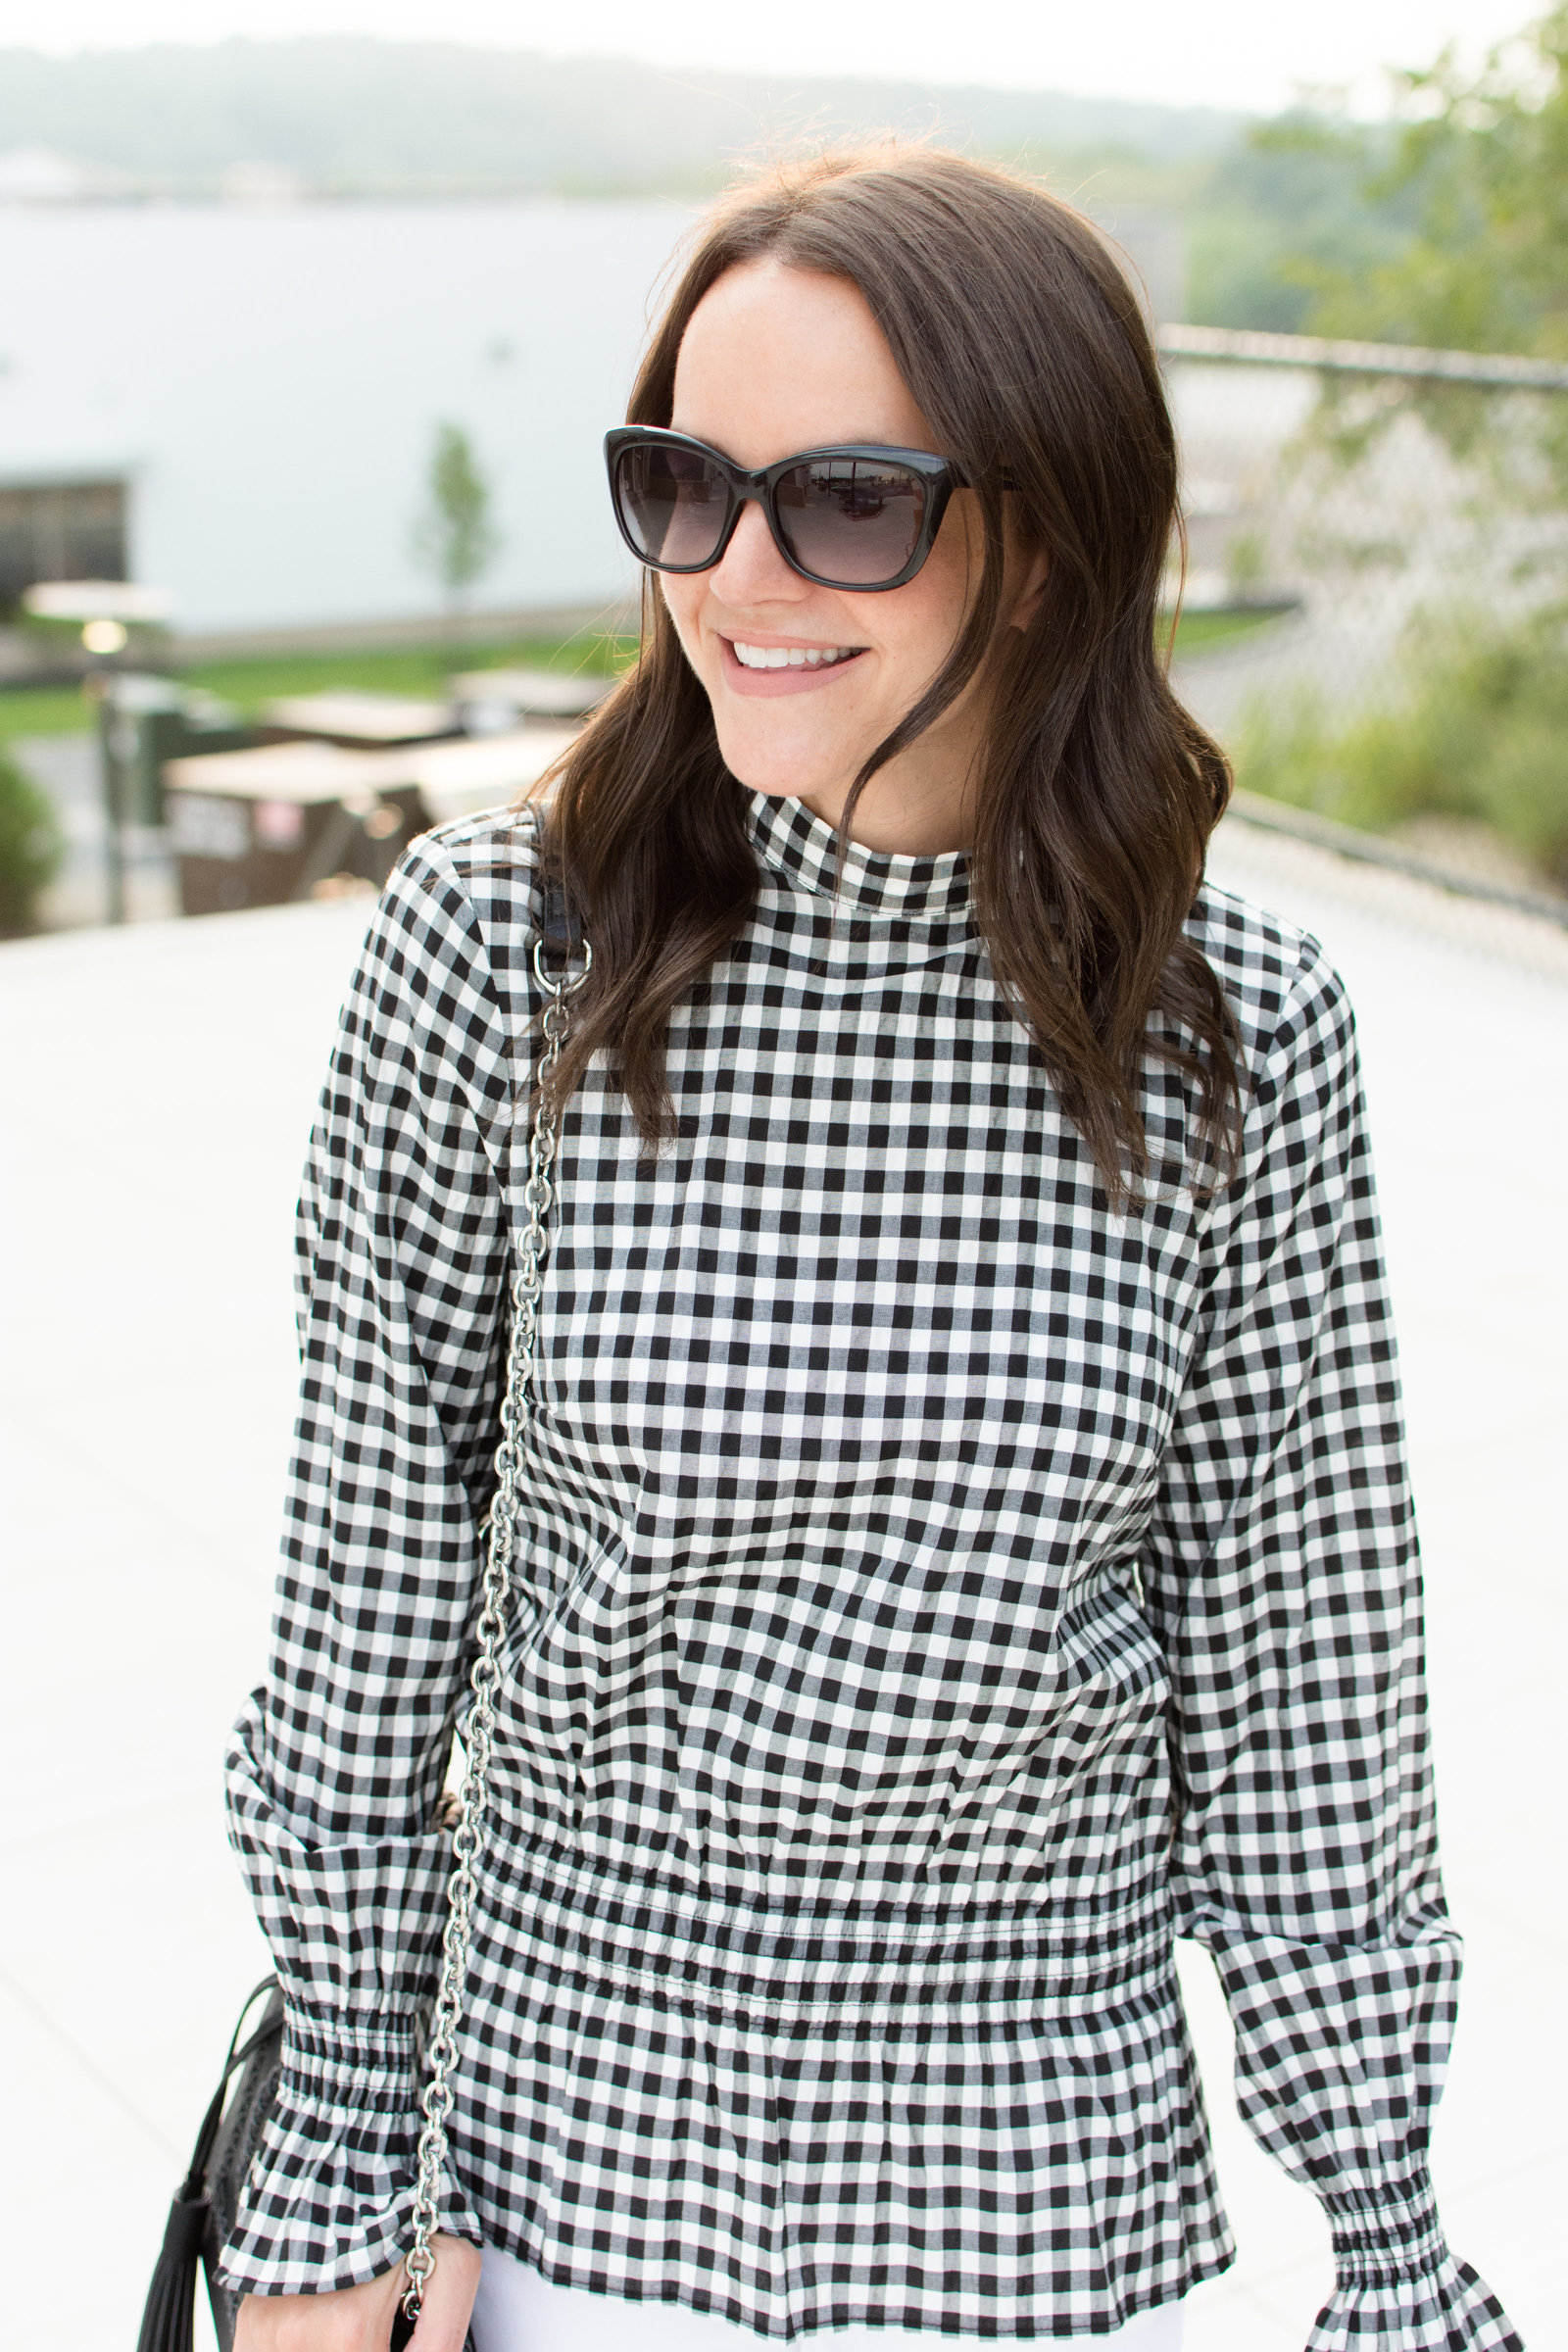 Chic Checkered Top